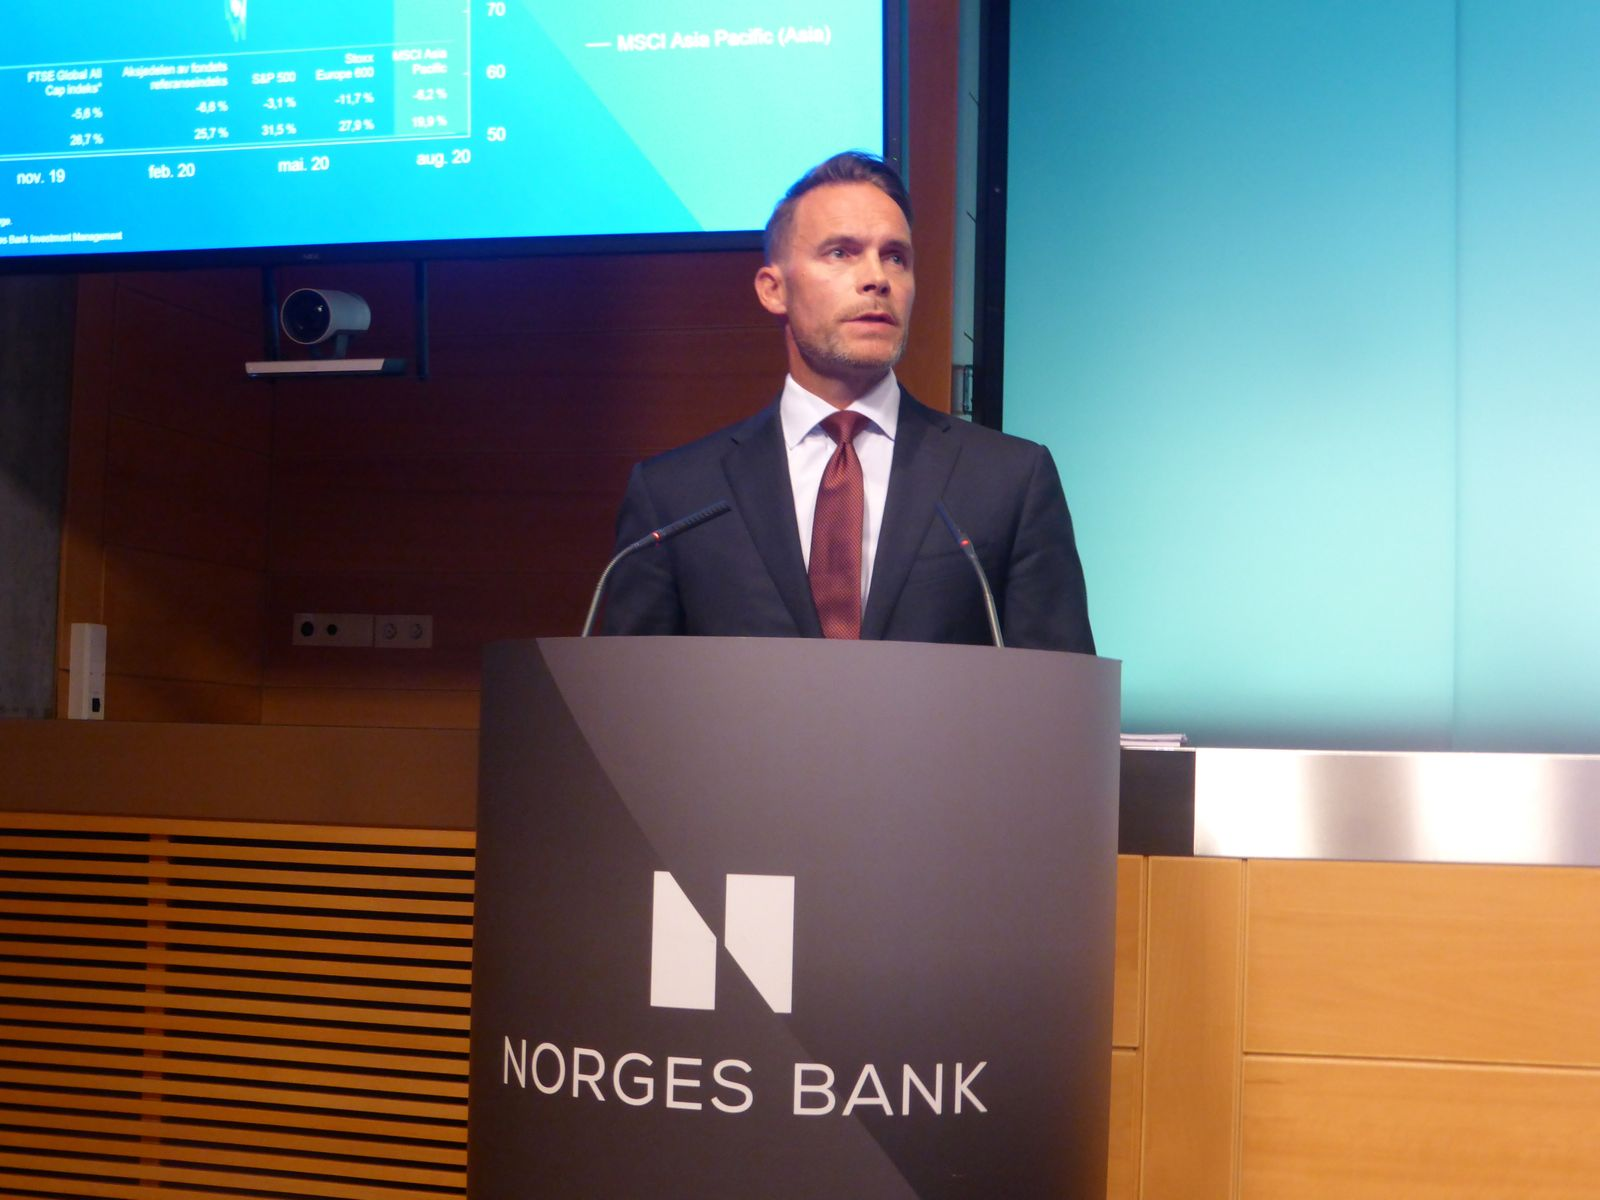 The deputy CEO of the Norwegian sovereign wealth fund Trond Grande speaks at a news conference at the Norwegian central bank in Oslo